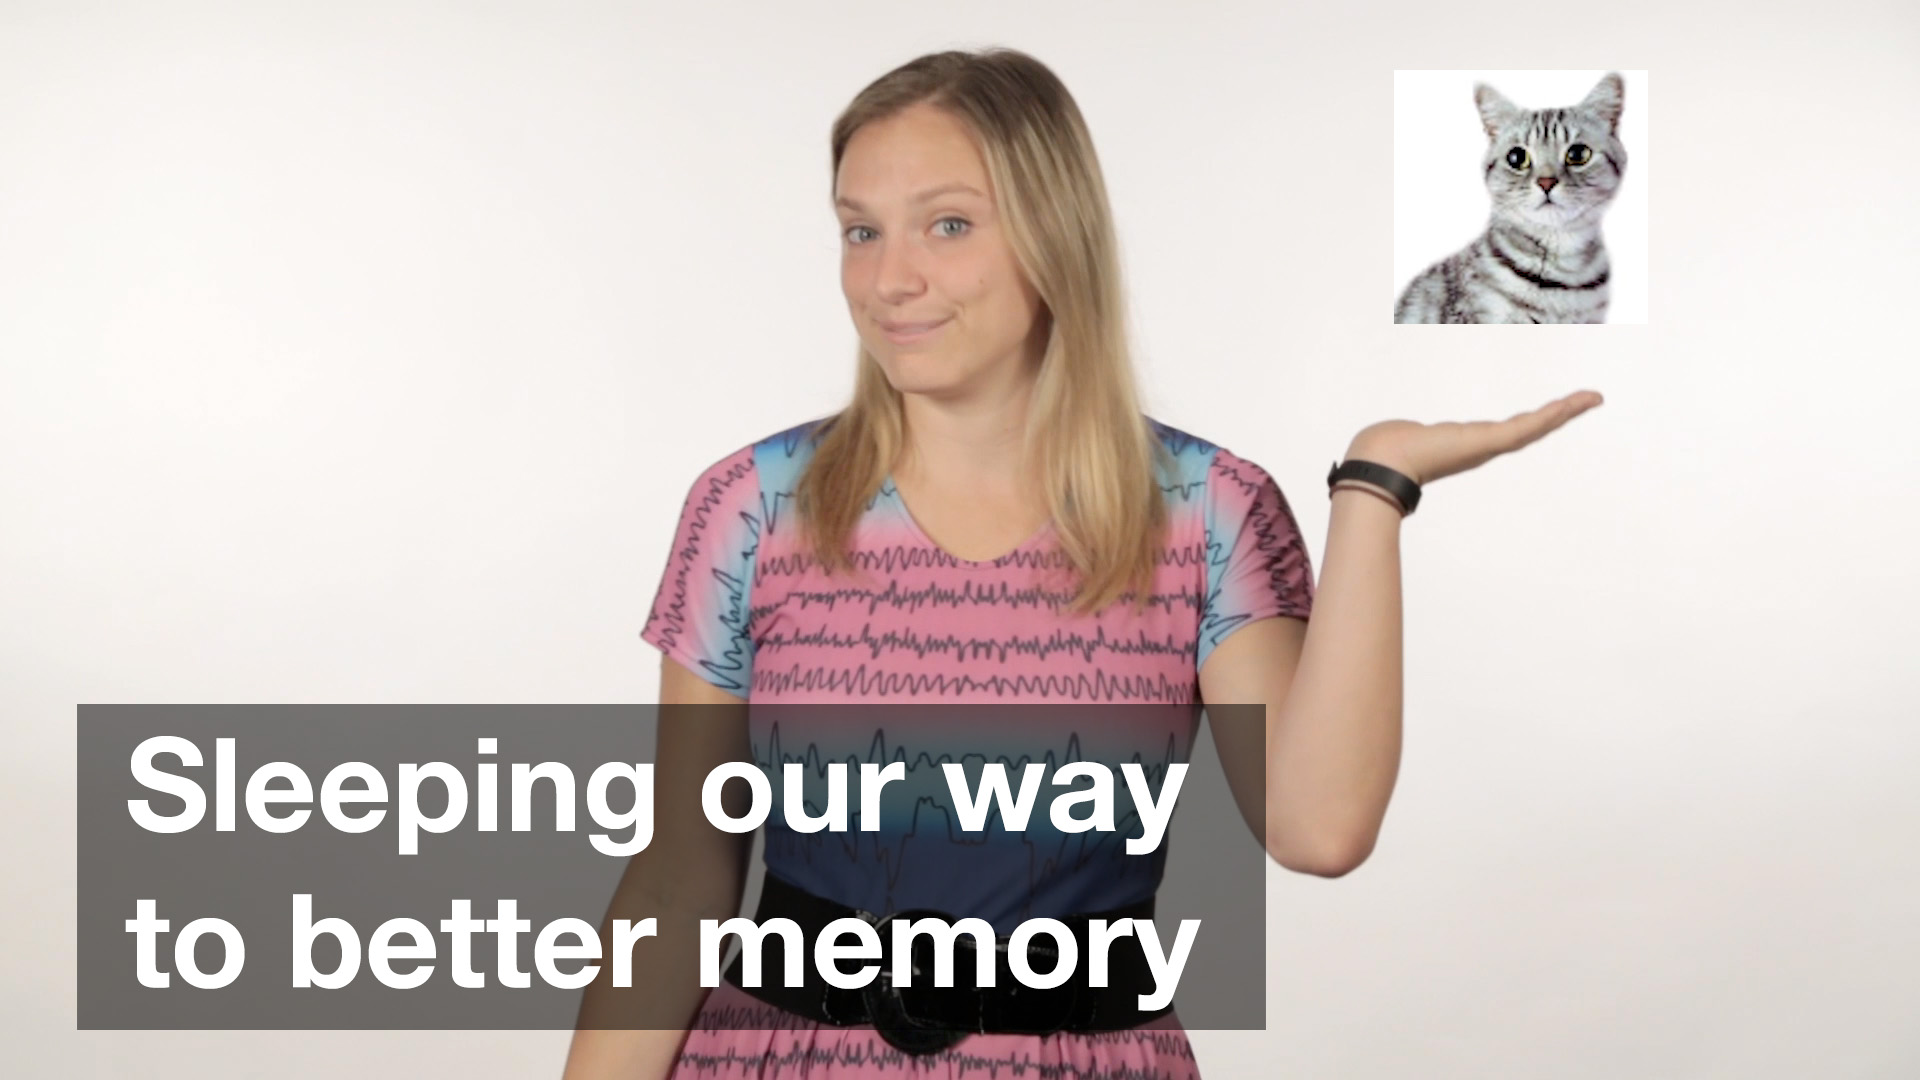 Sleeping our way to better memory